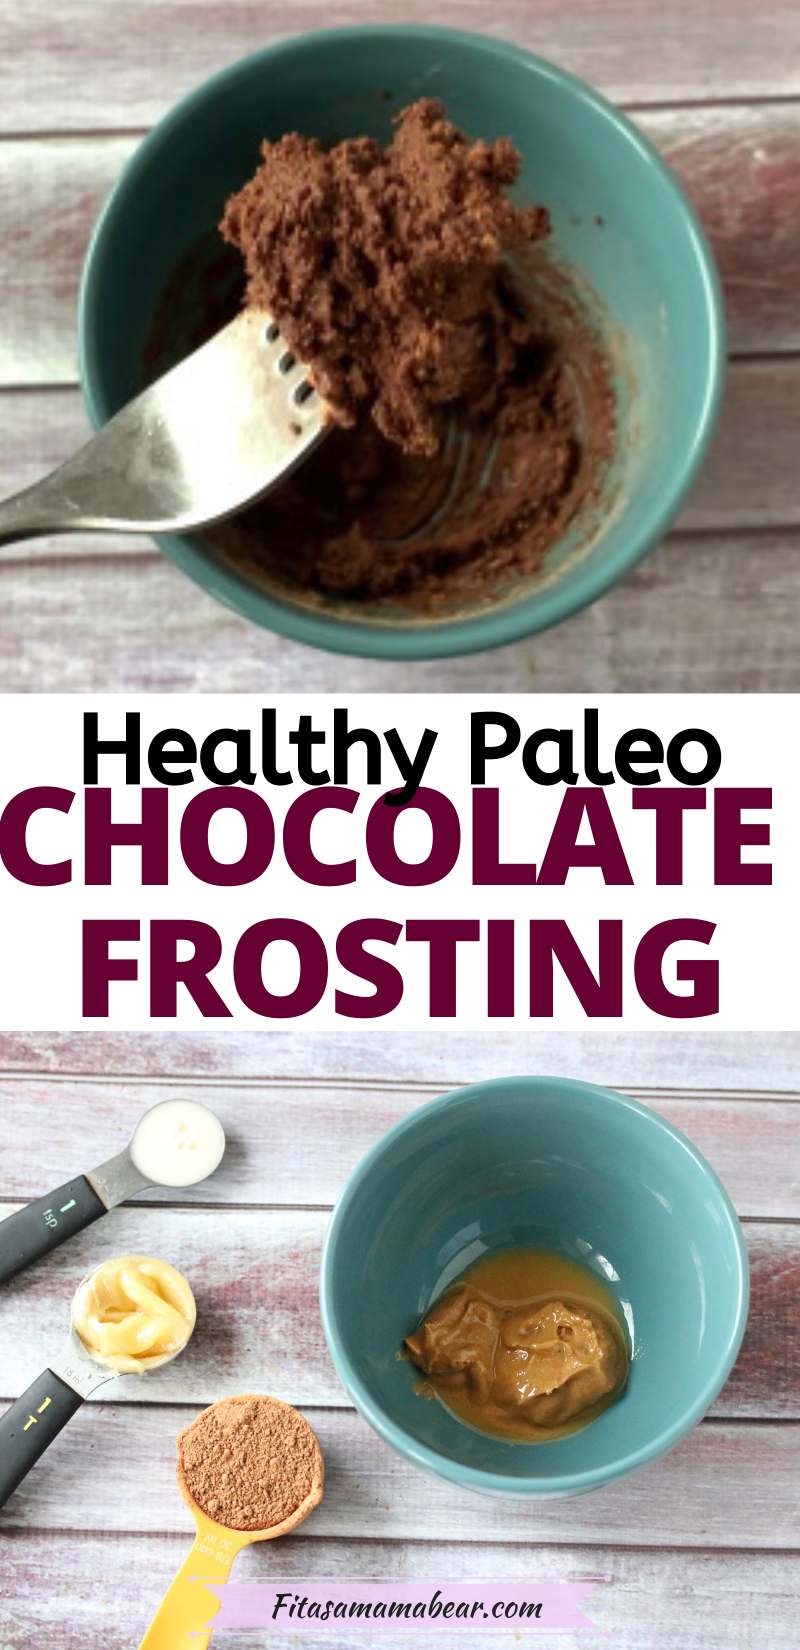 Pinterest image with text: two images of quick and easy chocolate frosting in a teal bowl